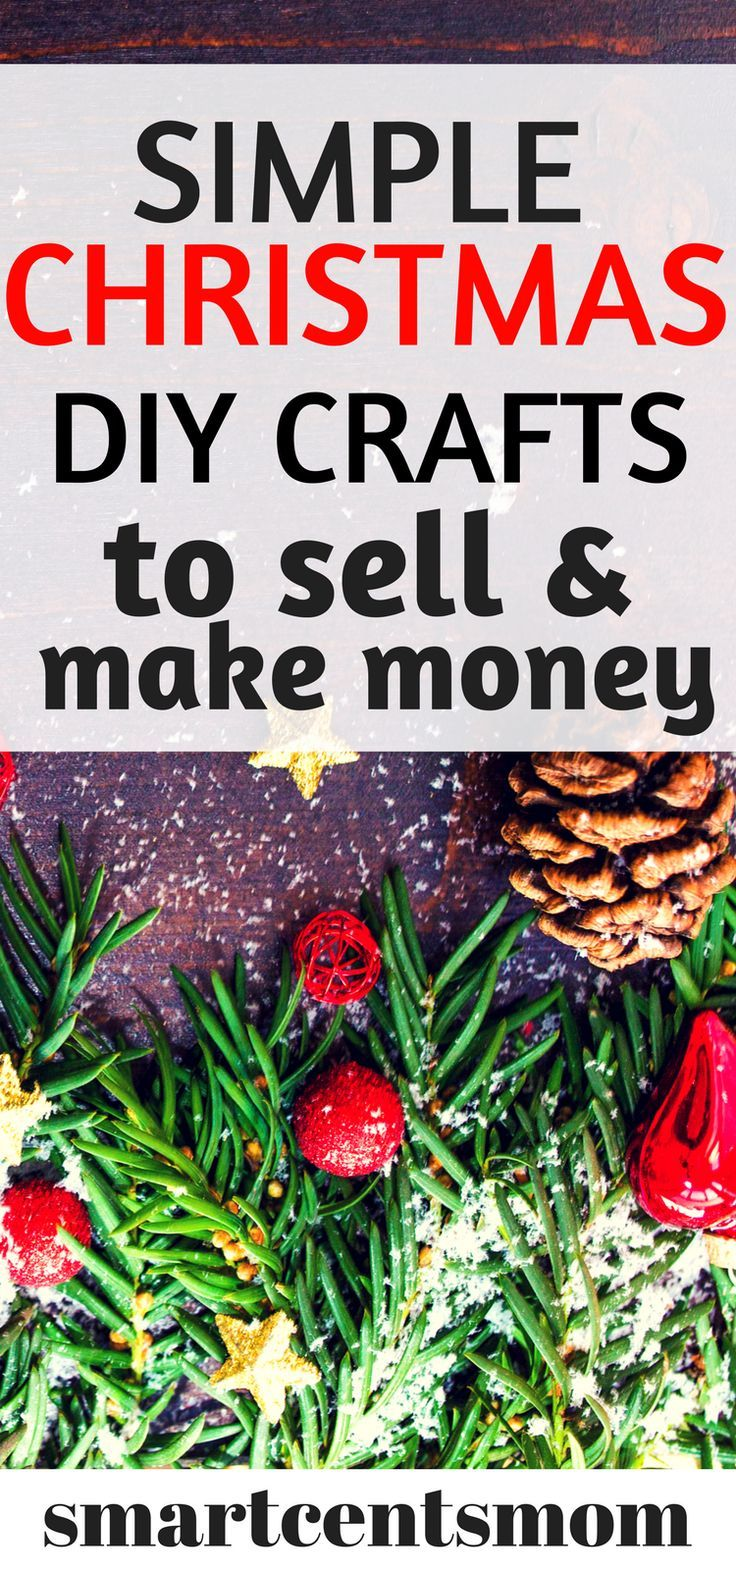 Diy Crafts To Make And Sell During The Holidays Diy Christmas Crafts To Sell Christmas Crafts To Sell Christmas Crafts To Sell Make Money